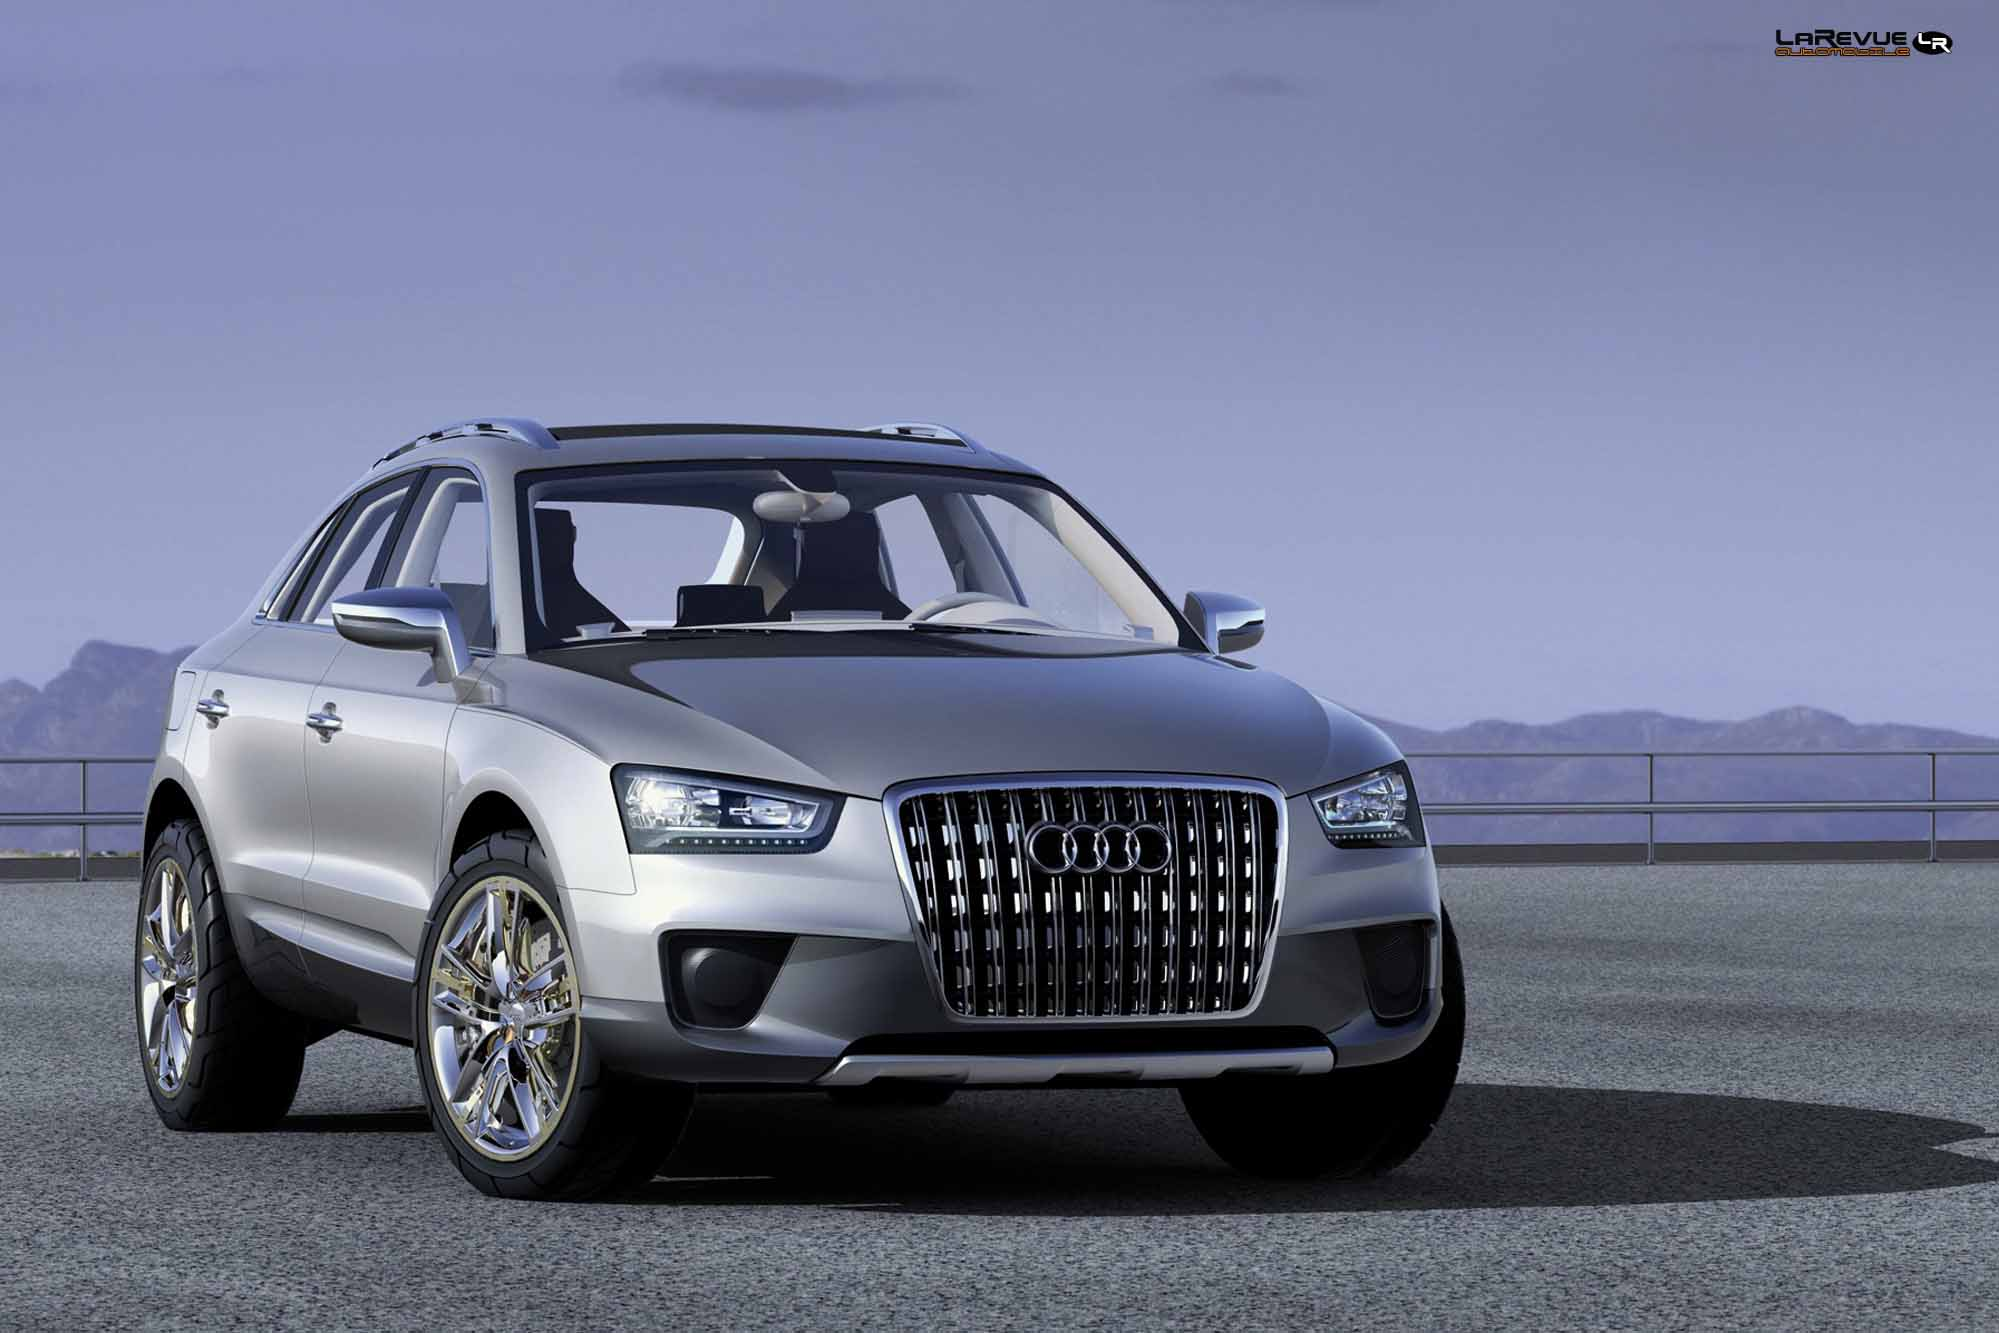 Exterieur_Audi-Cross-Coupe_4